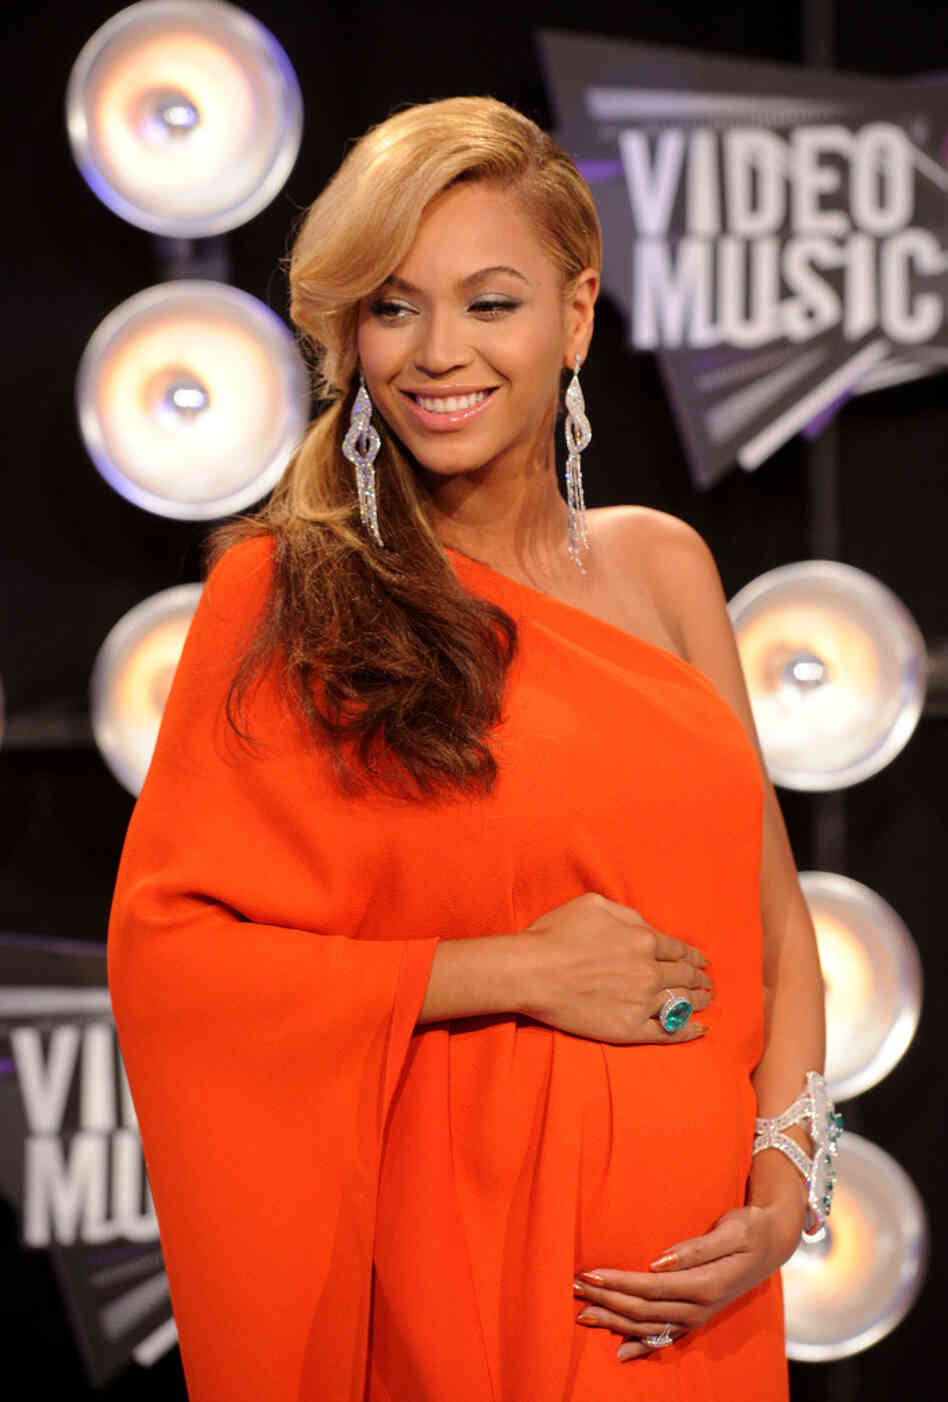 Beyonce arrives at the Video Music Awards on Sunday night, where she made her pregnancy public.